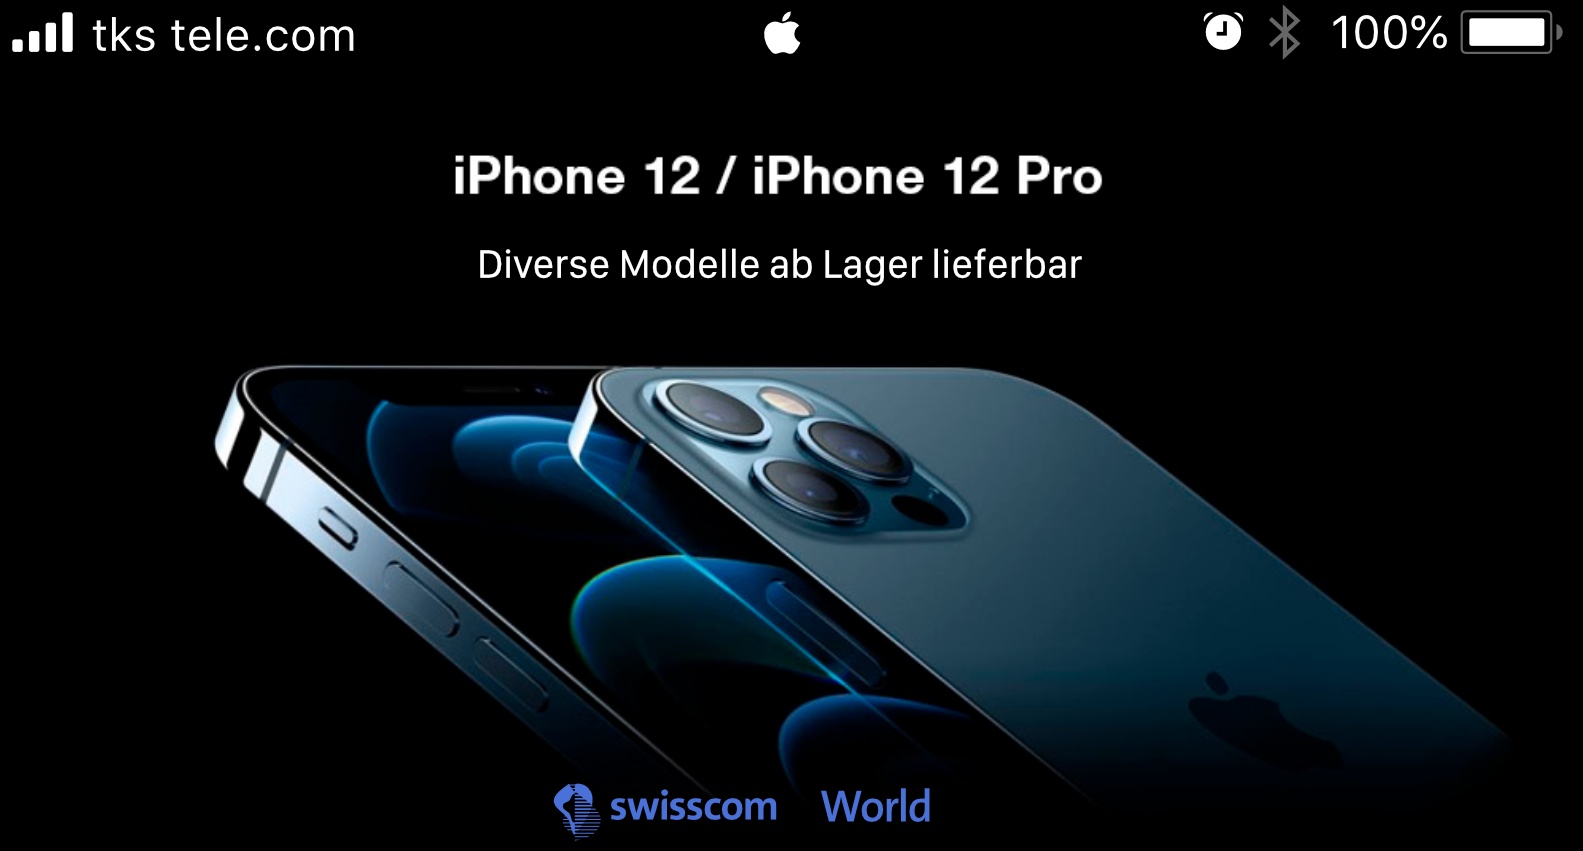 iphone 12 PRO, diverse Modelle ab Lager lieferbar